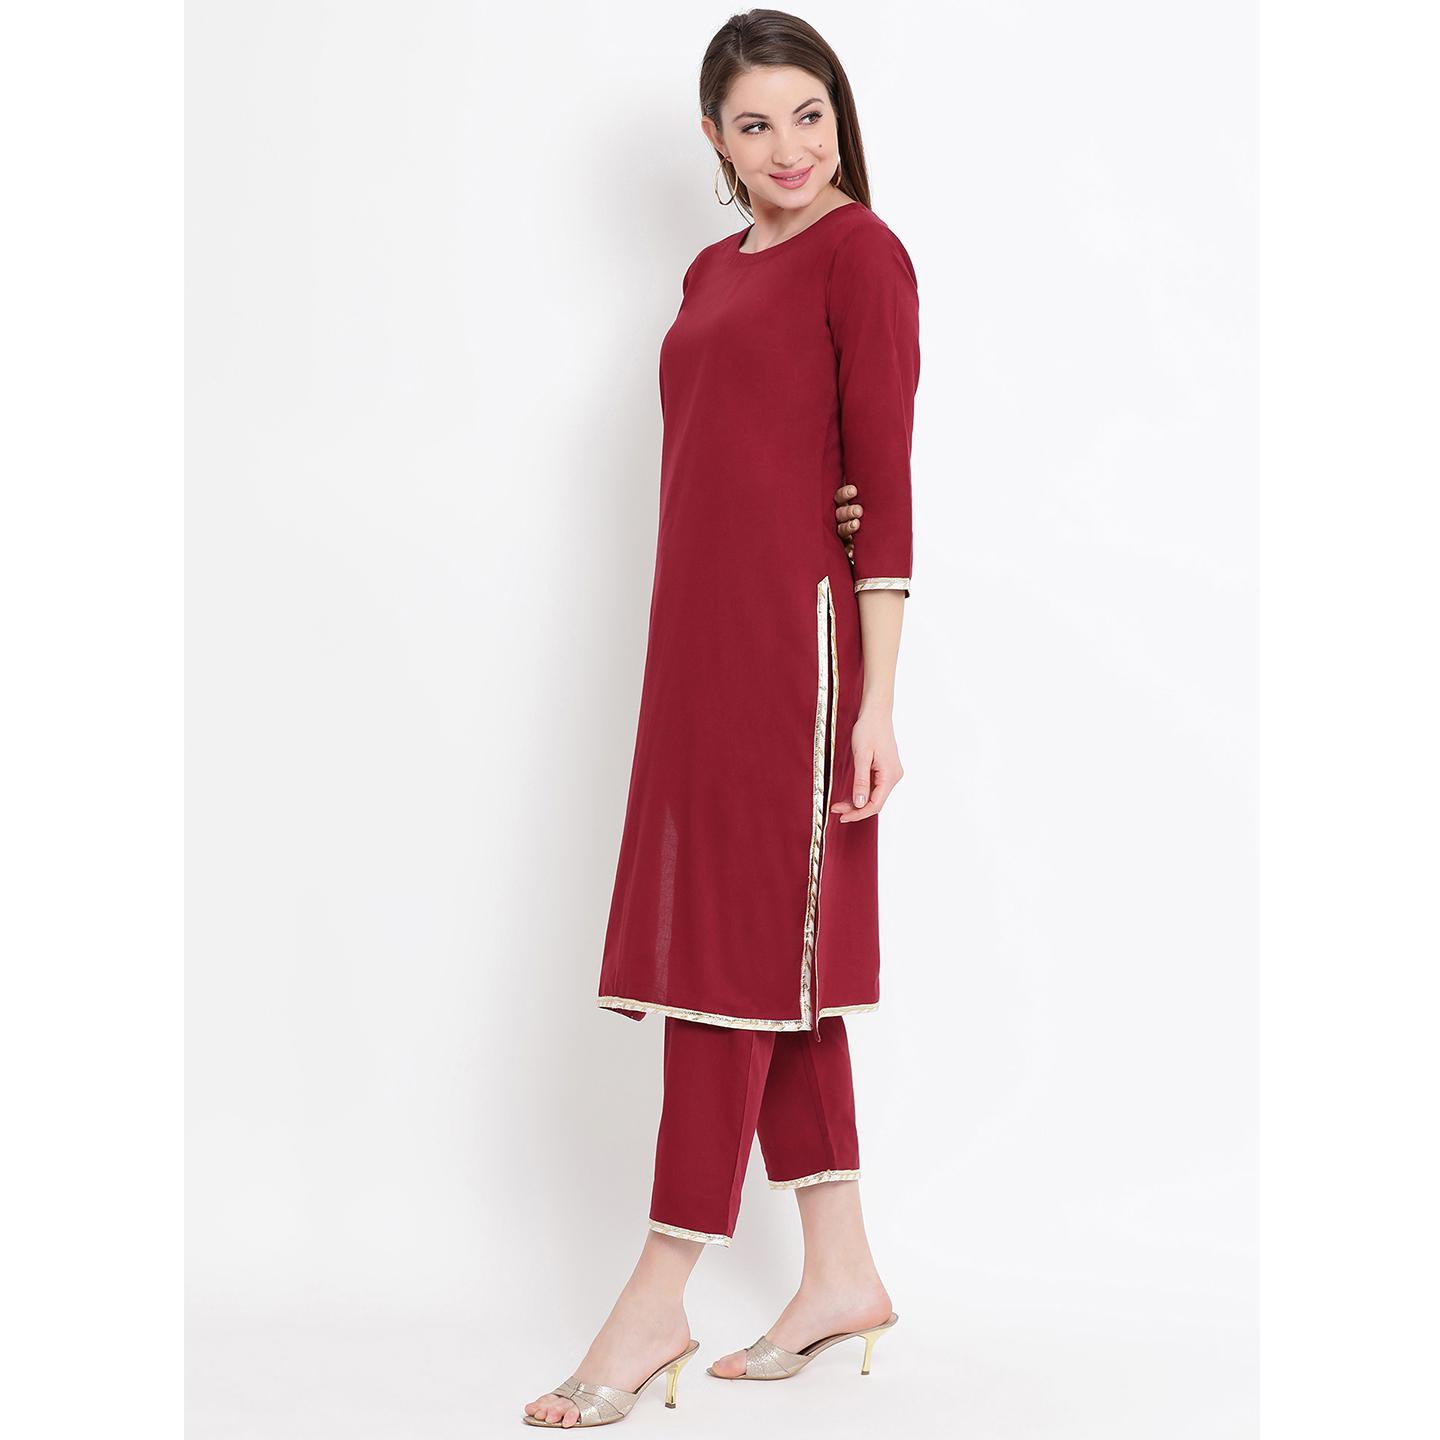 Fabnest - Maroon Colored Casual Wear Cotton Kurti